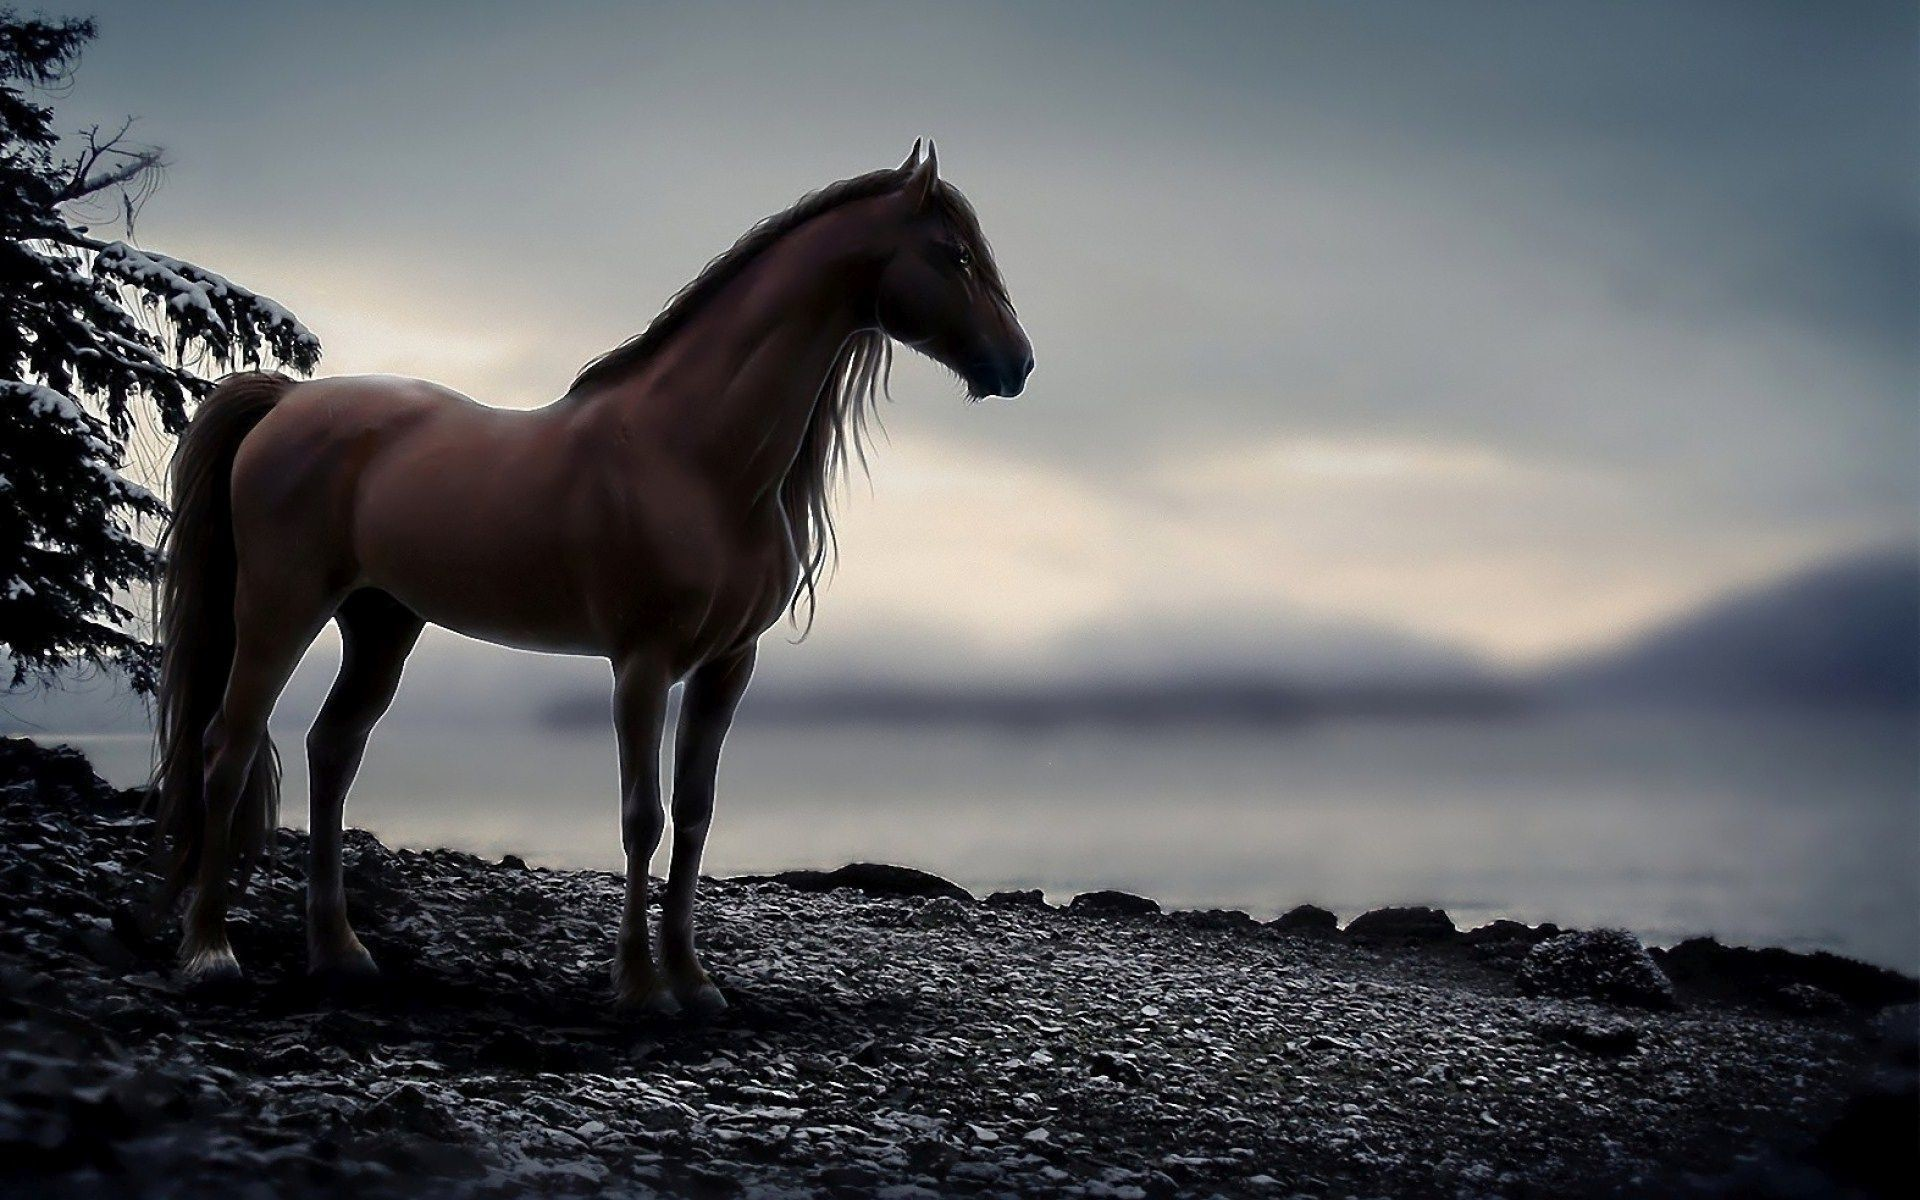 Res: 1920x1200, Horse Wallpapers HD 16148 - HD Wallpapers Site